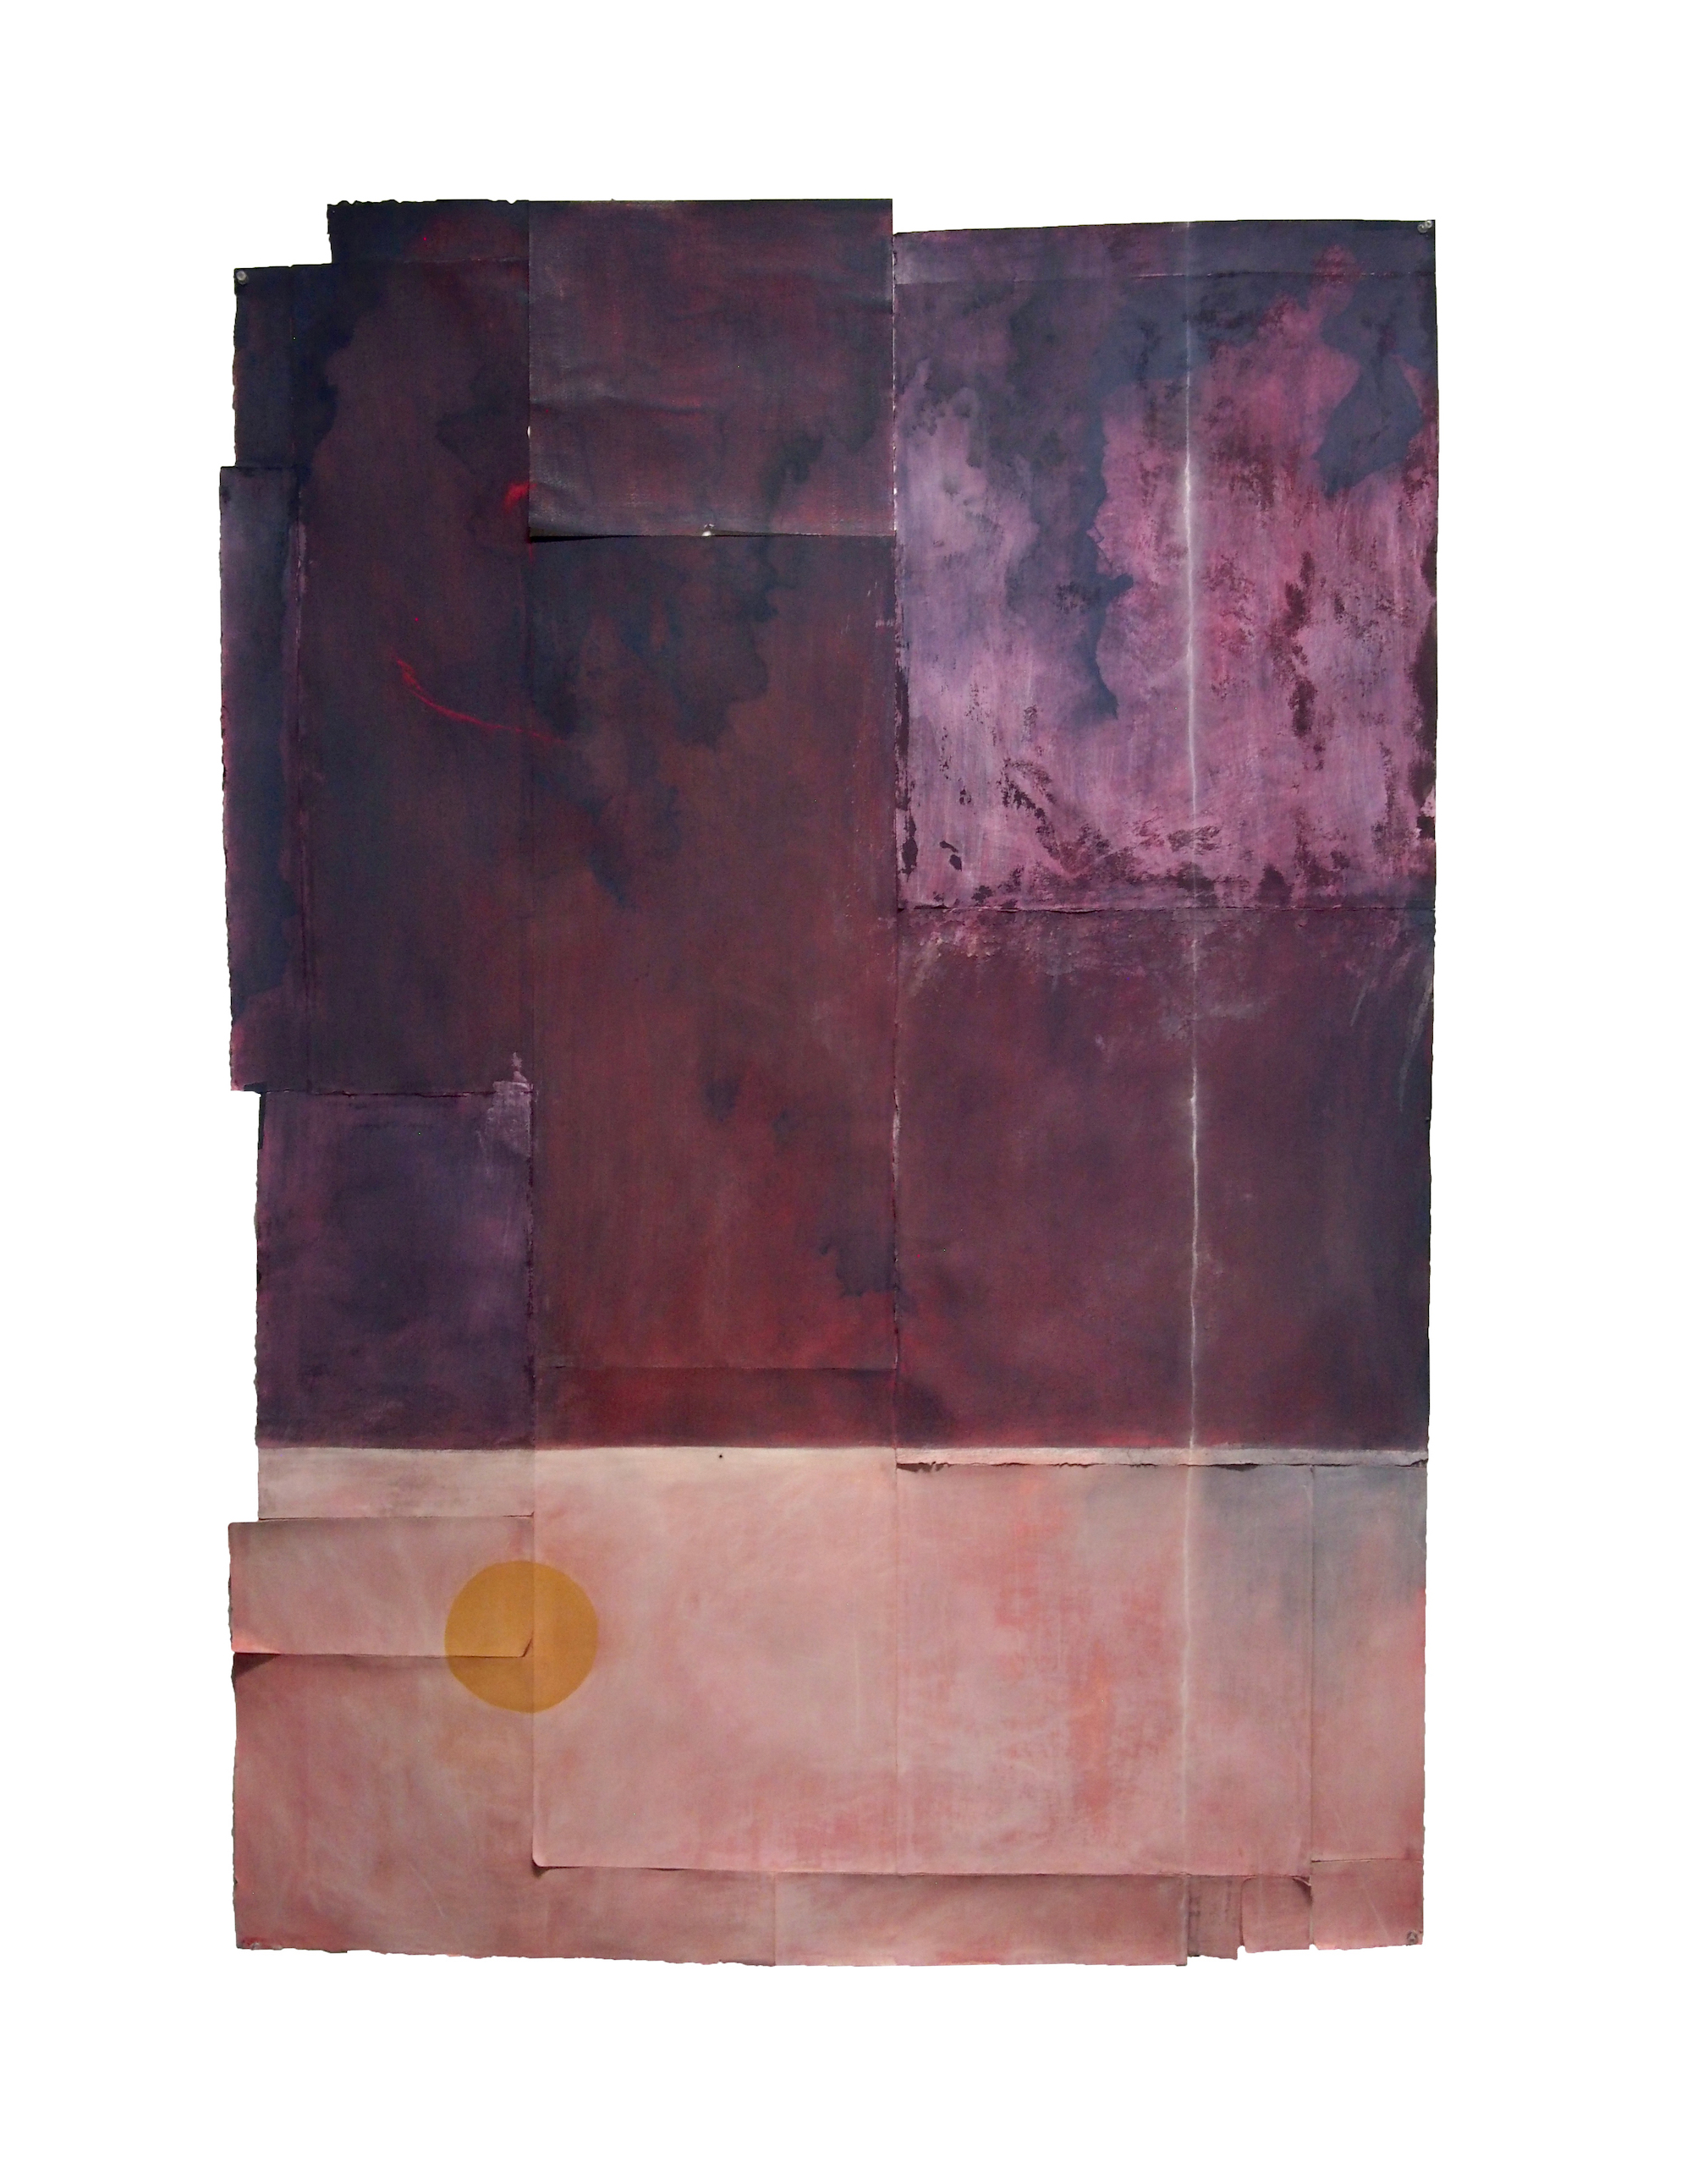 Many sheets of paper of different sizes are assembled together as one, with the top two-thirds of the piece painted dark purple with some strokes of red and pink, and the bottom third painted light pink with an orange circle in the bottom left corner.